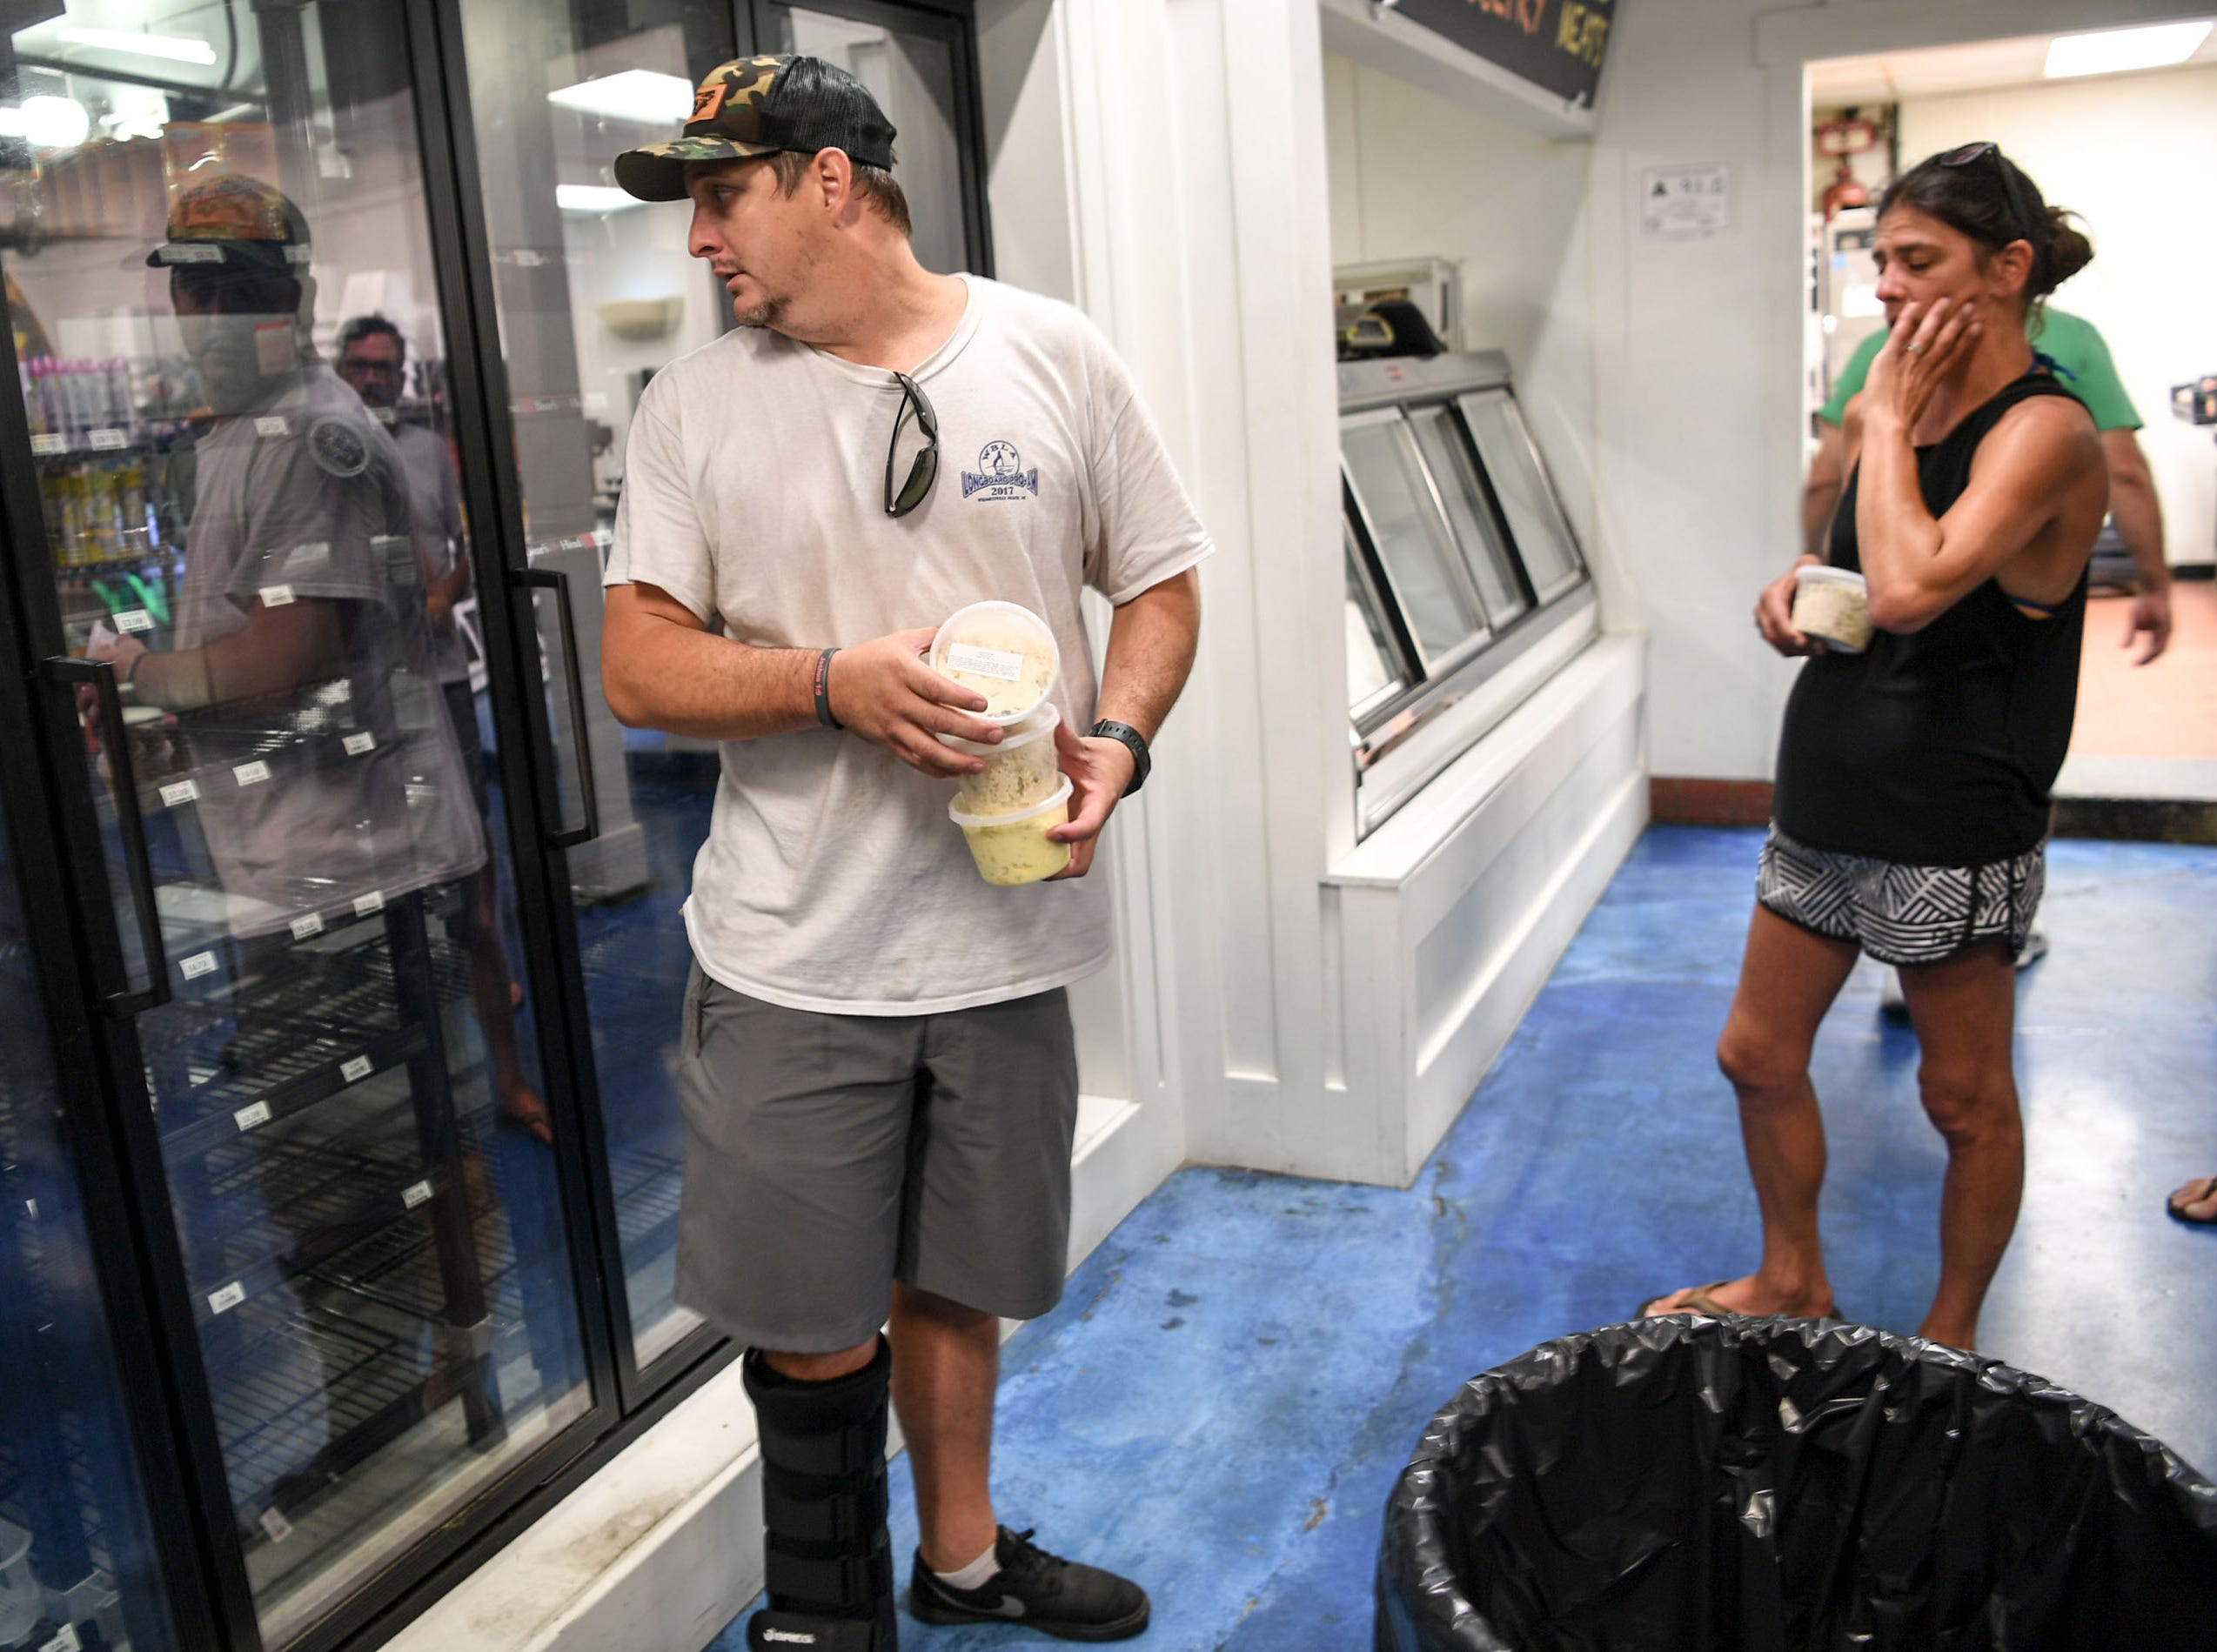 Kelly Baucom, owner of Jerry Allen's Grill, gets prerishable items at Roberts Grocery, at Wrigtsville Beach in Wilmington, North Carolina on Wednesday, September 12, 2018. The store was giving away perishables since they would go to waste. (Ken Ruinard / Greenville News / Gannett USA Today Network / 2018 )